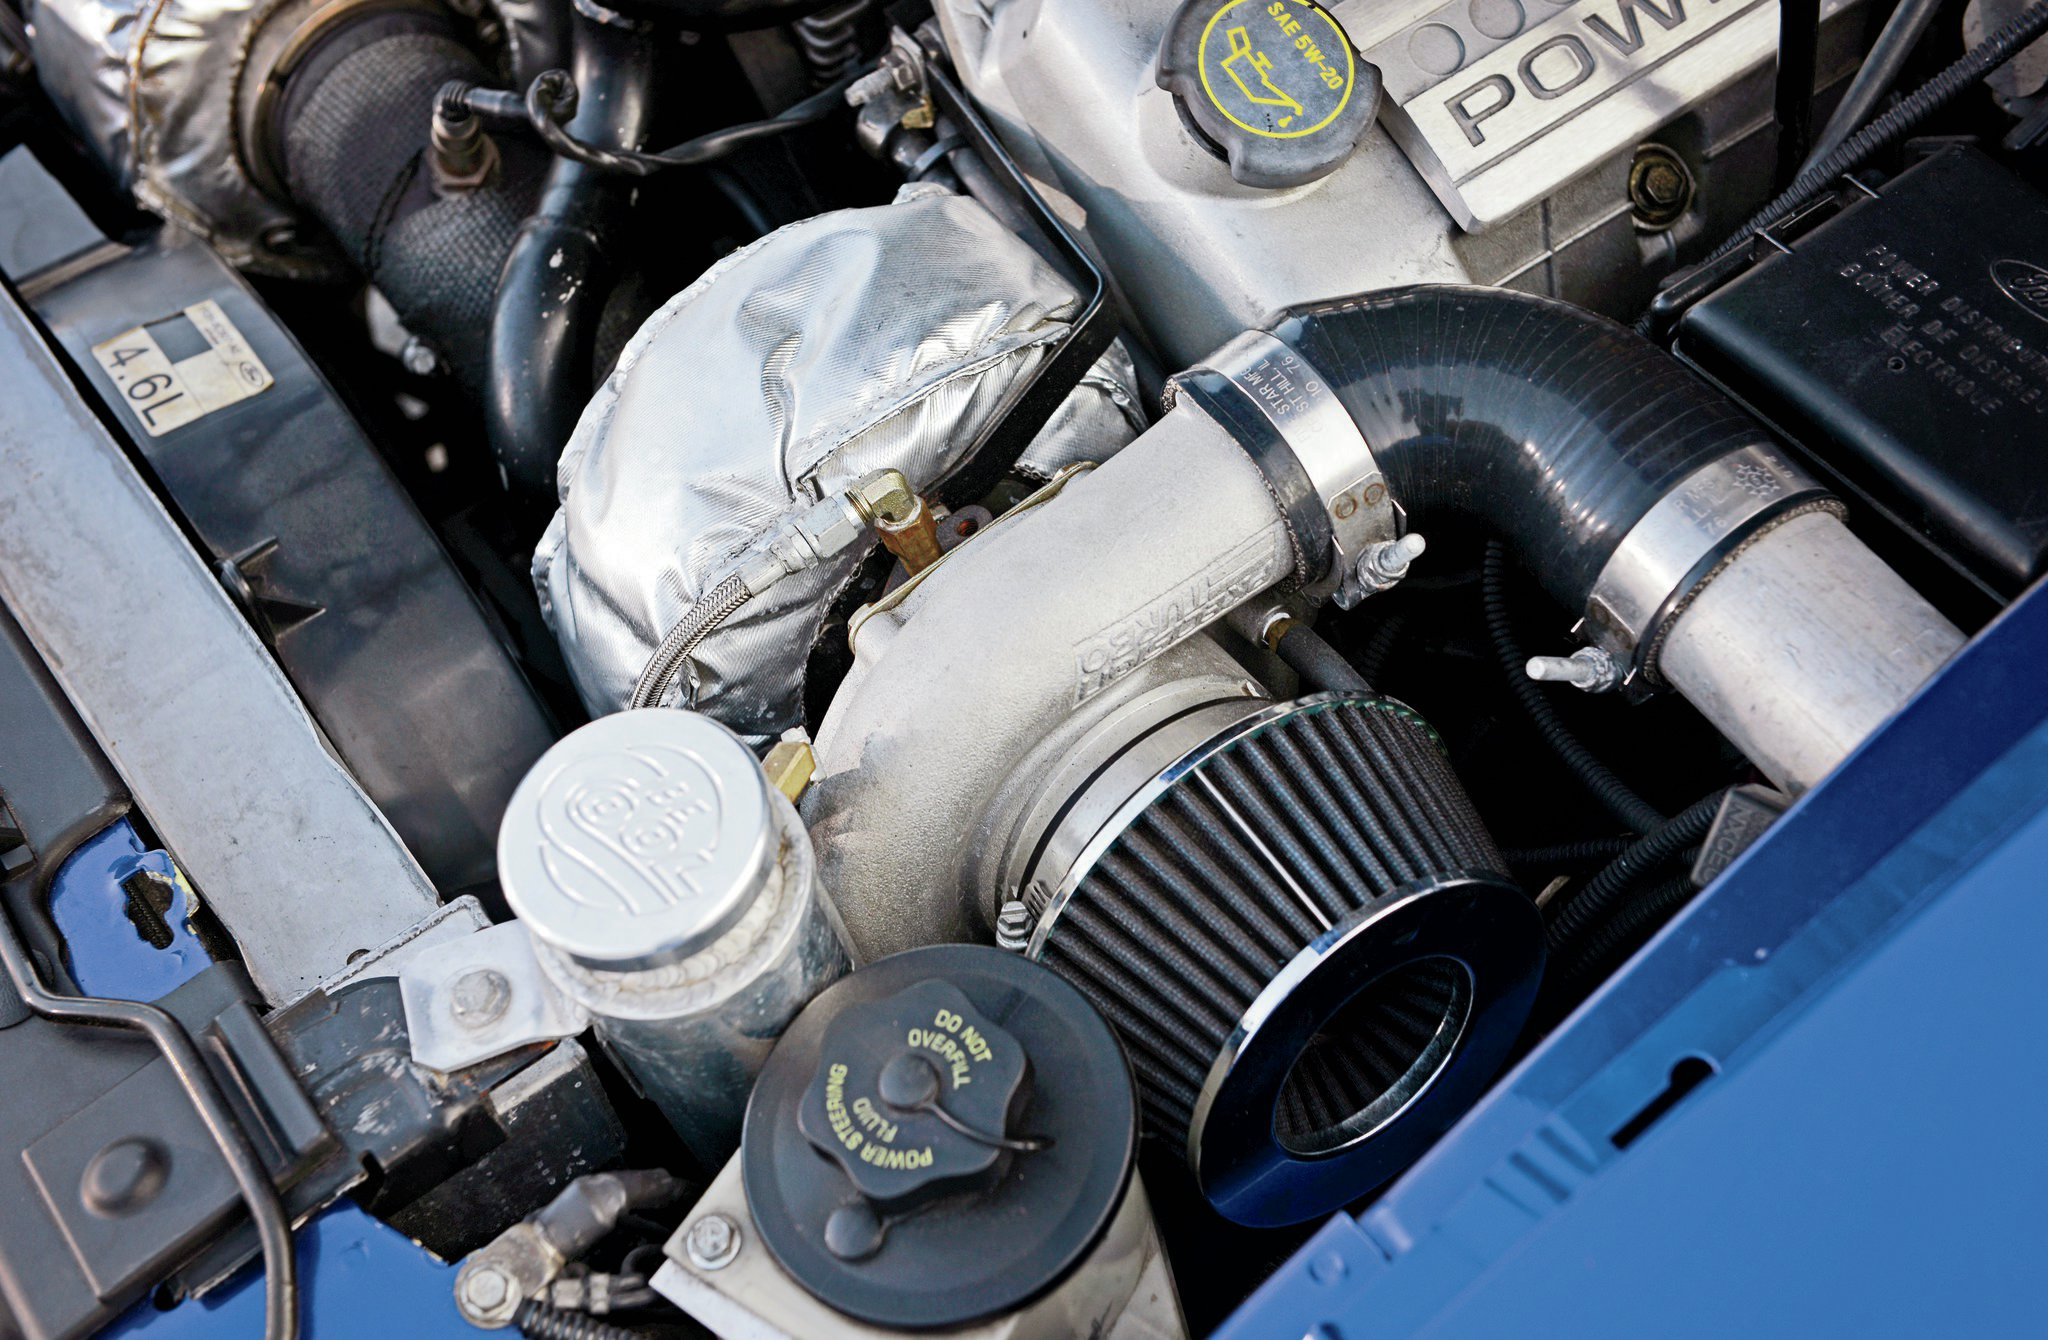 2002 Ford Mustang Engine View